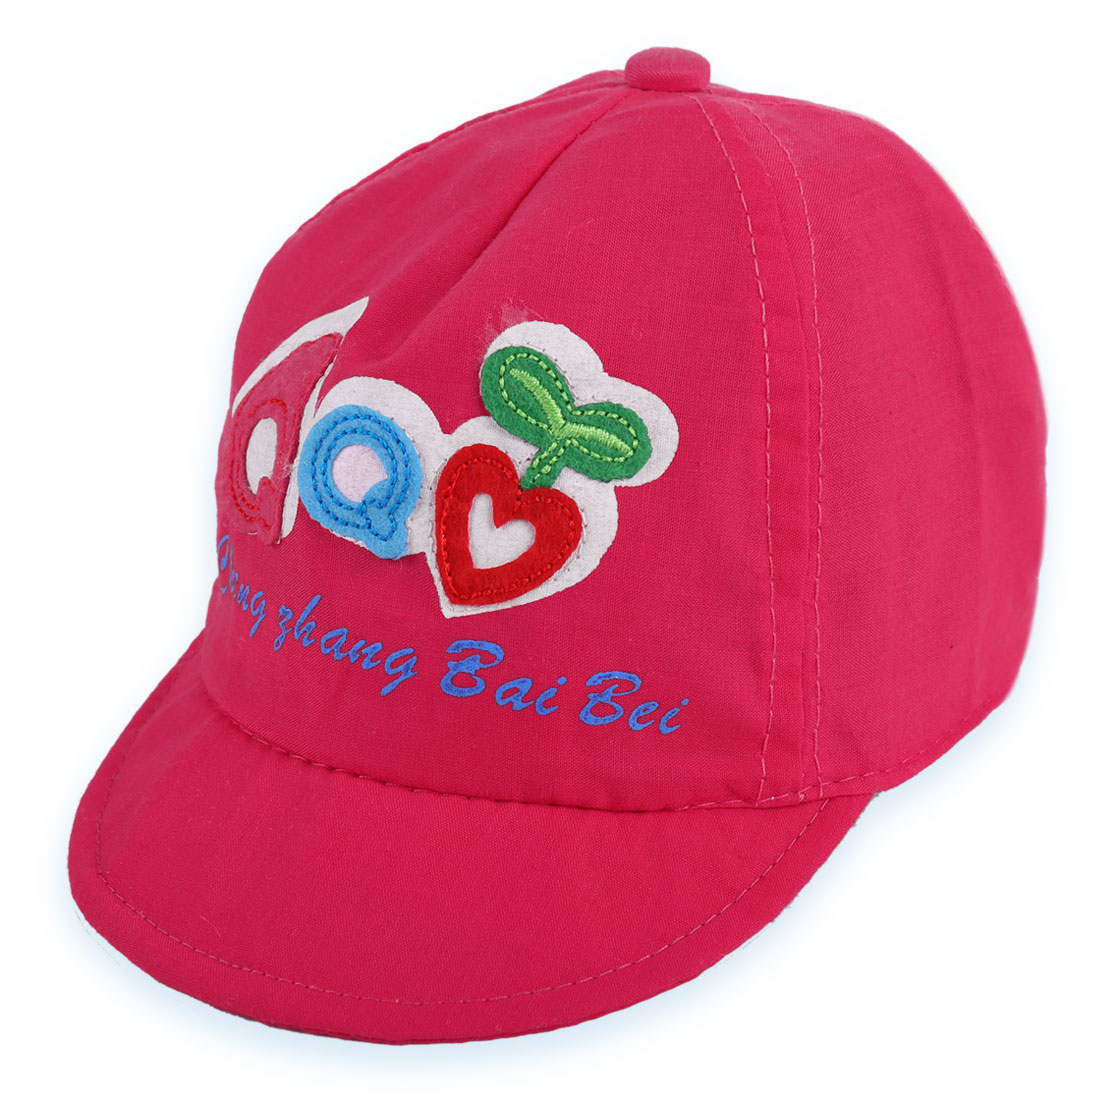 Boys Girls Low Crown Elastic Back Heart Embroidery Cap Fuchsia